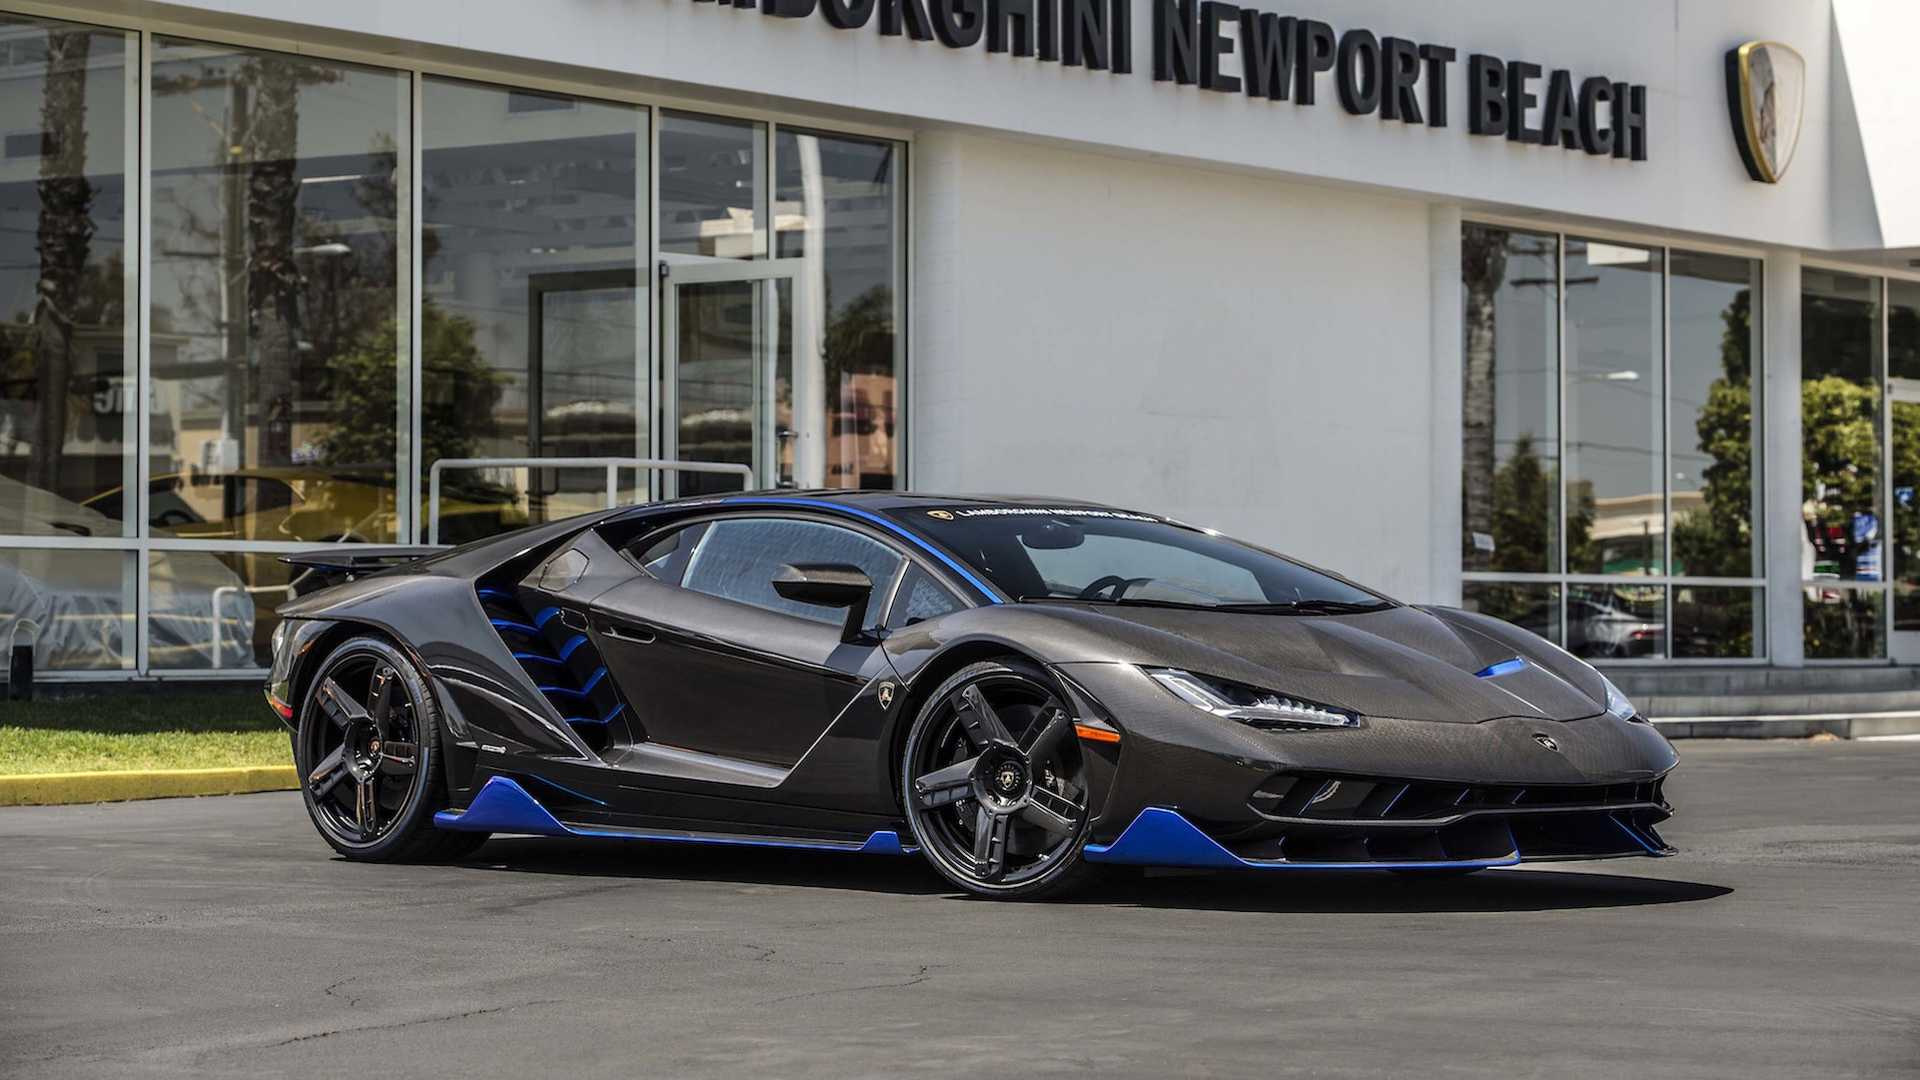 for usa benchmark sportscars aventador the in super prices uk ggt included gbp price suggested retail china featured rmb elevating taxes usd s excluded lamborghini